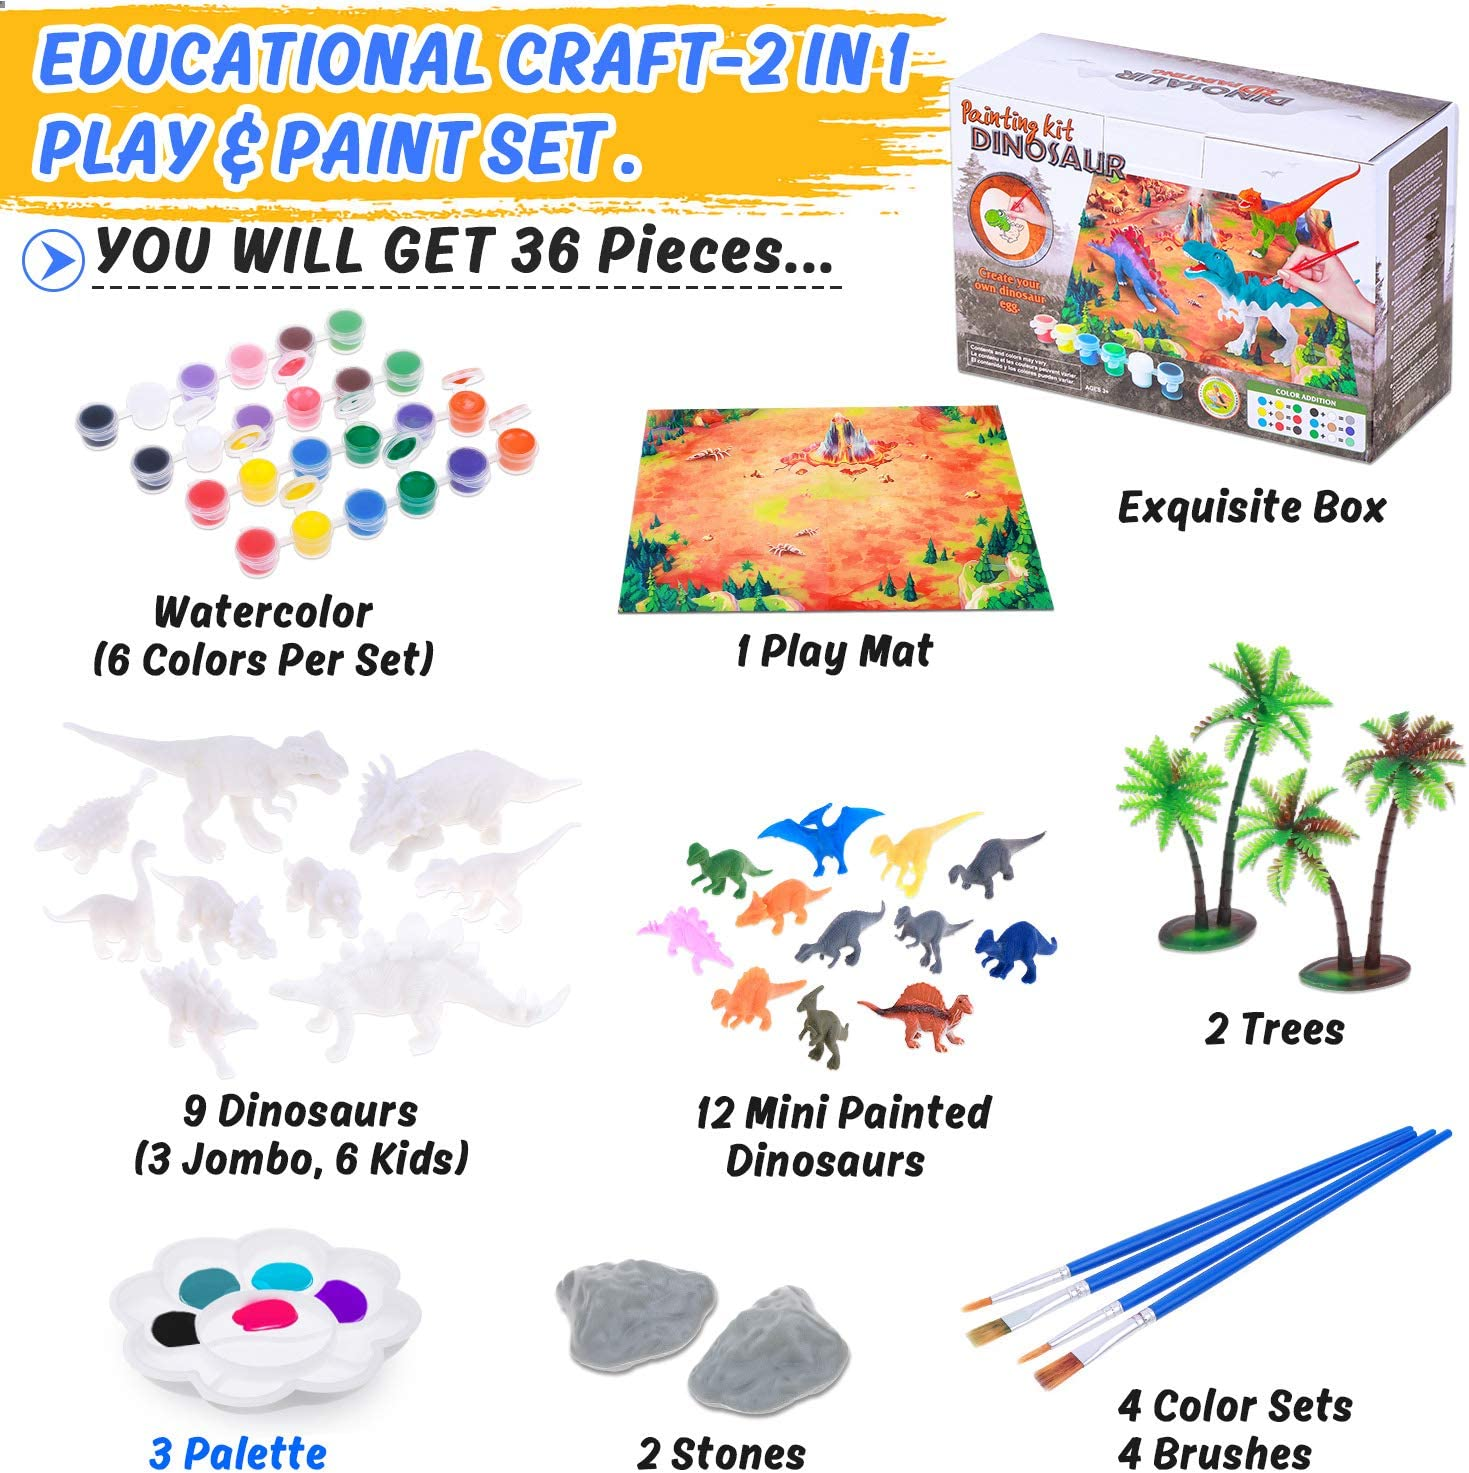 Kids Arts and Crafts Supplies Create Your Own Dinosaurs Figures World Painting Kit Dinosaurs Craft Party Favors for Boys Girls Age 4 5 6 7 8 9 Years and Up